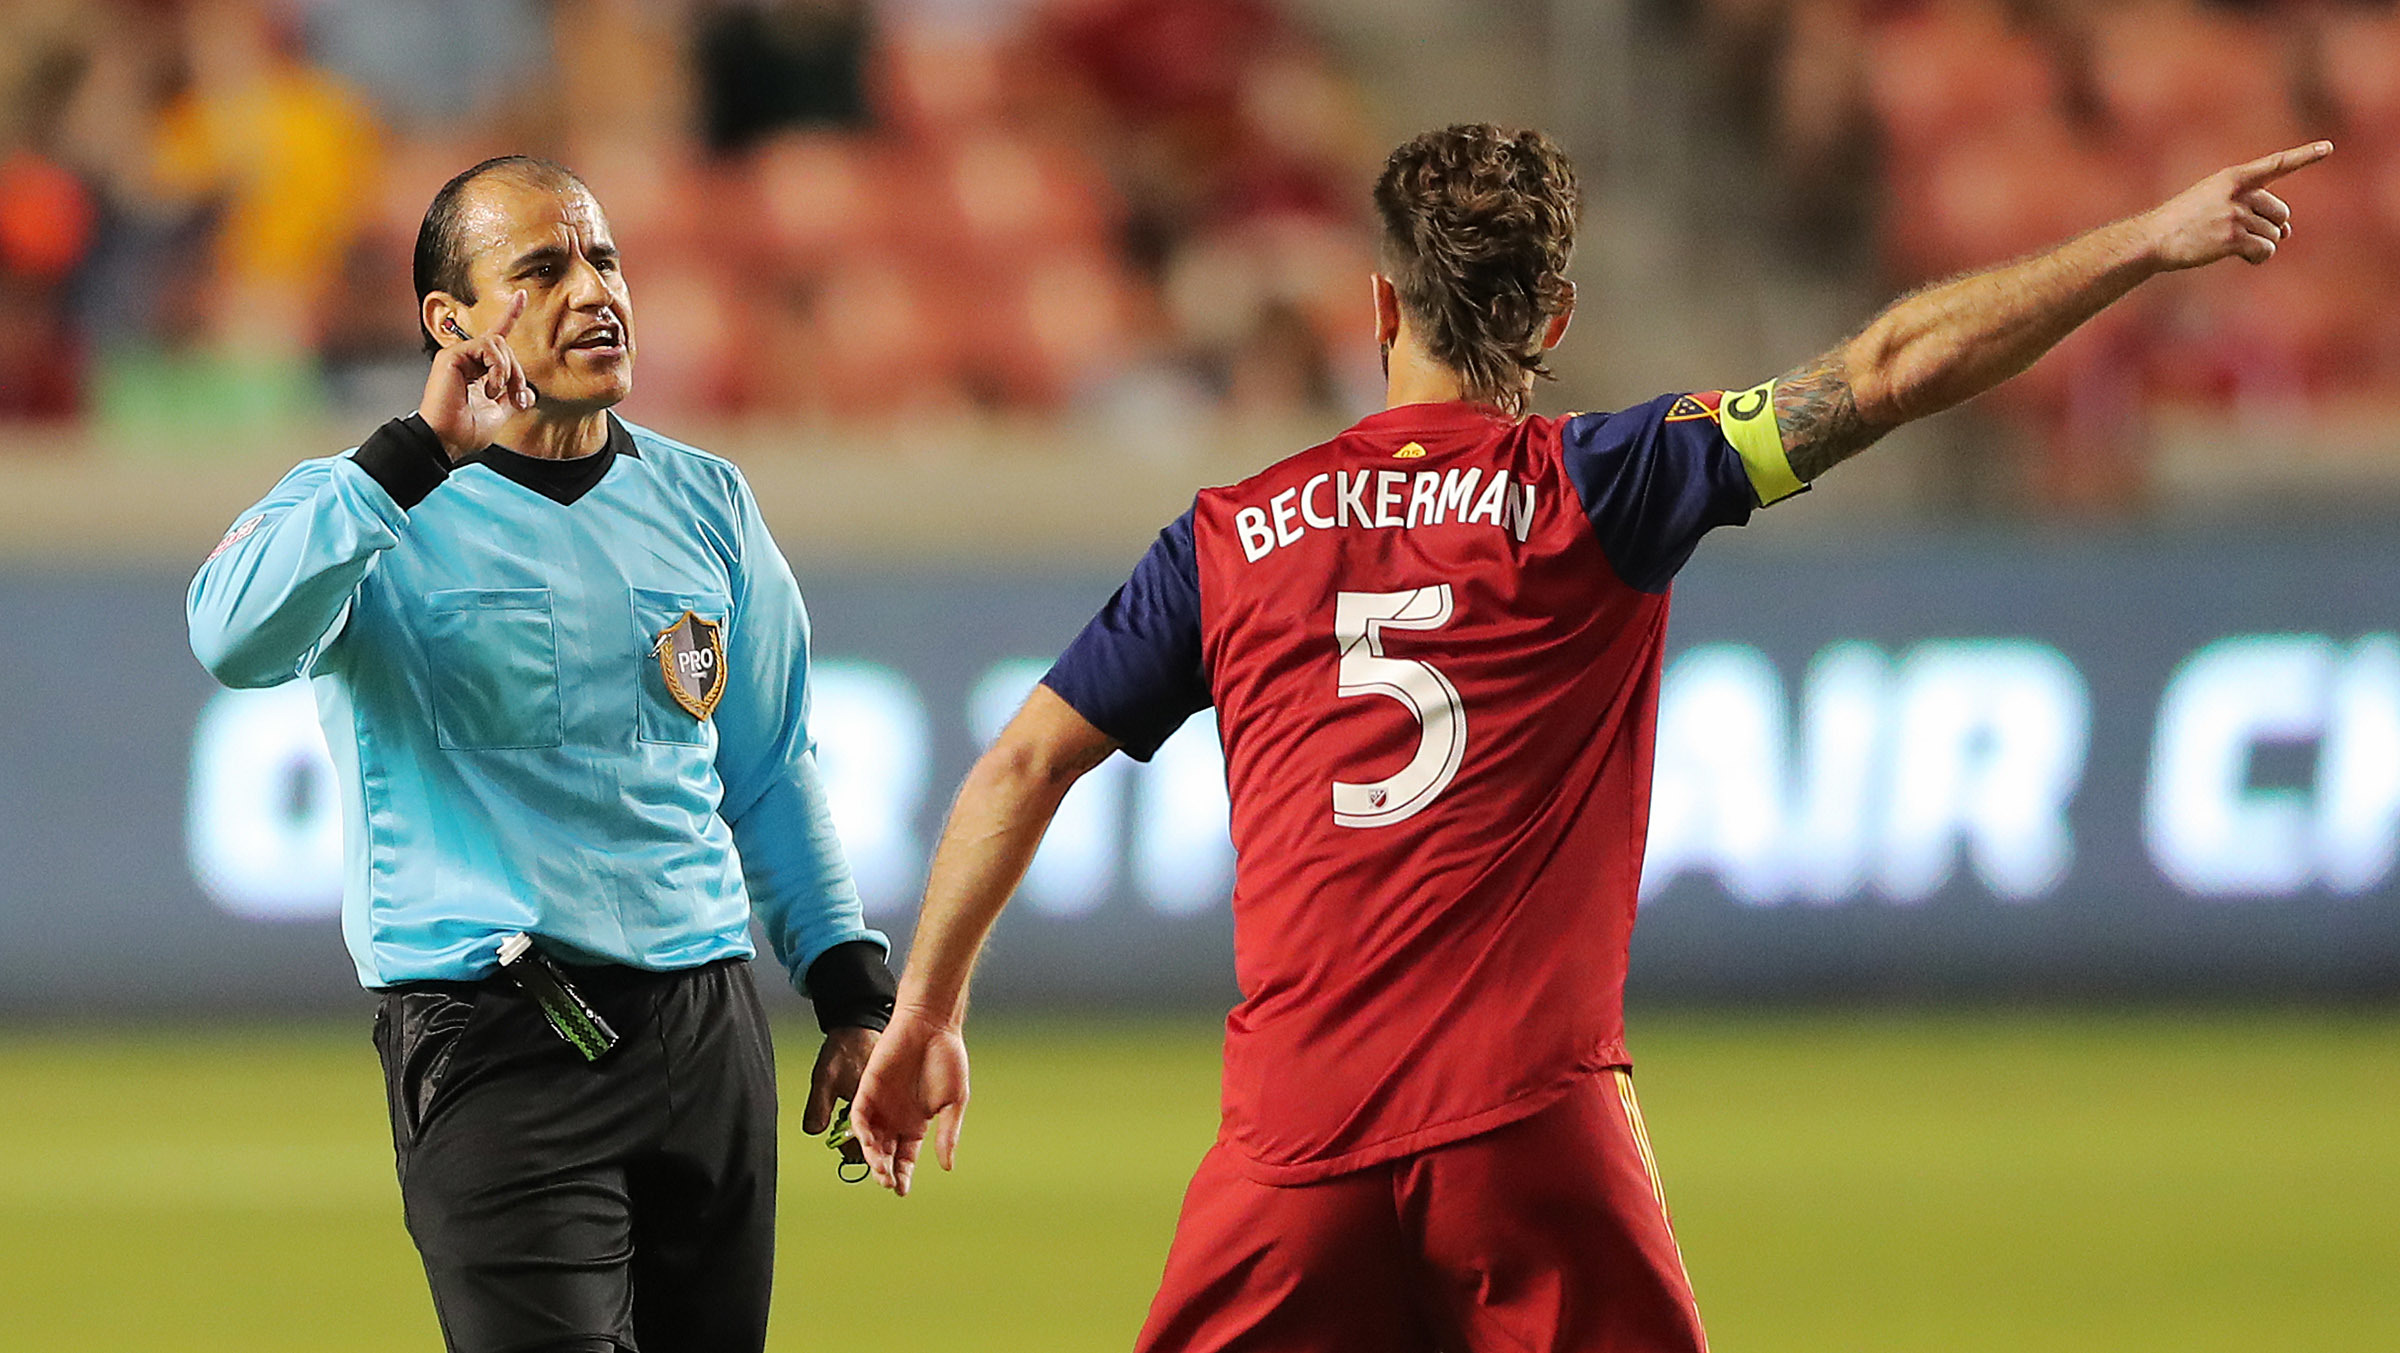 Real Salt Lake midfielder Kyle Beckerman (5) argues with Referee Baldomero Toledo as Real Salt Lake and the Colorado Rapids play at Rio Tinto Stadium in Sandy on Saturday, July 21, 2018.